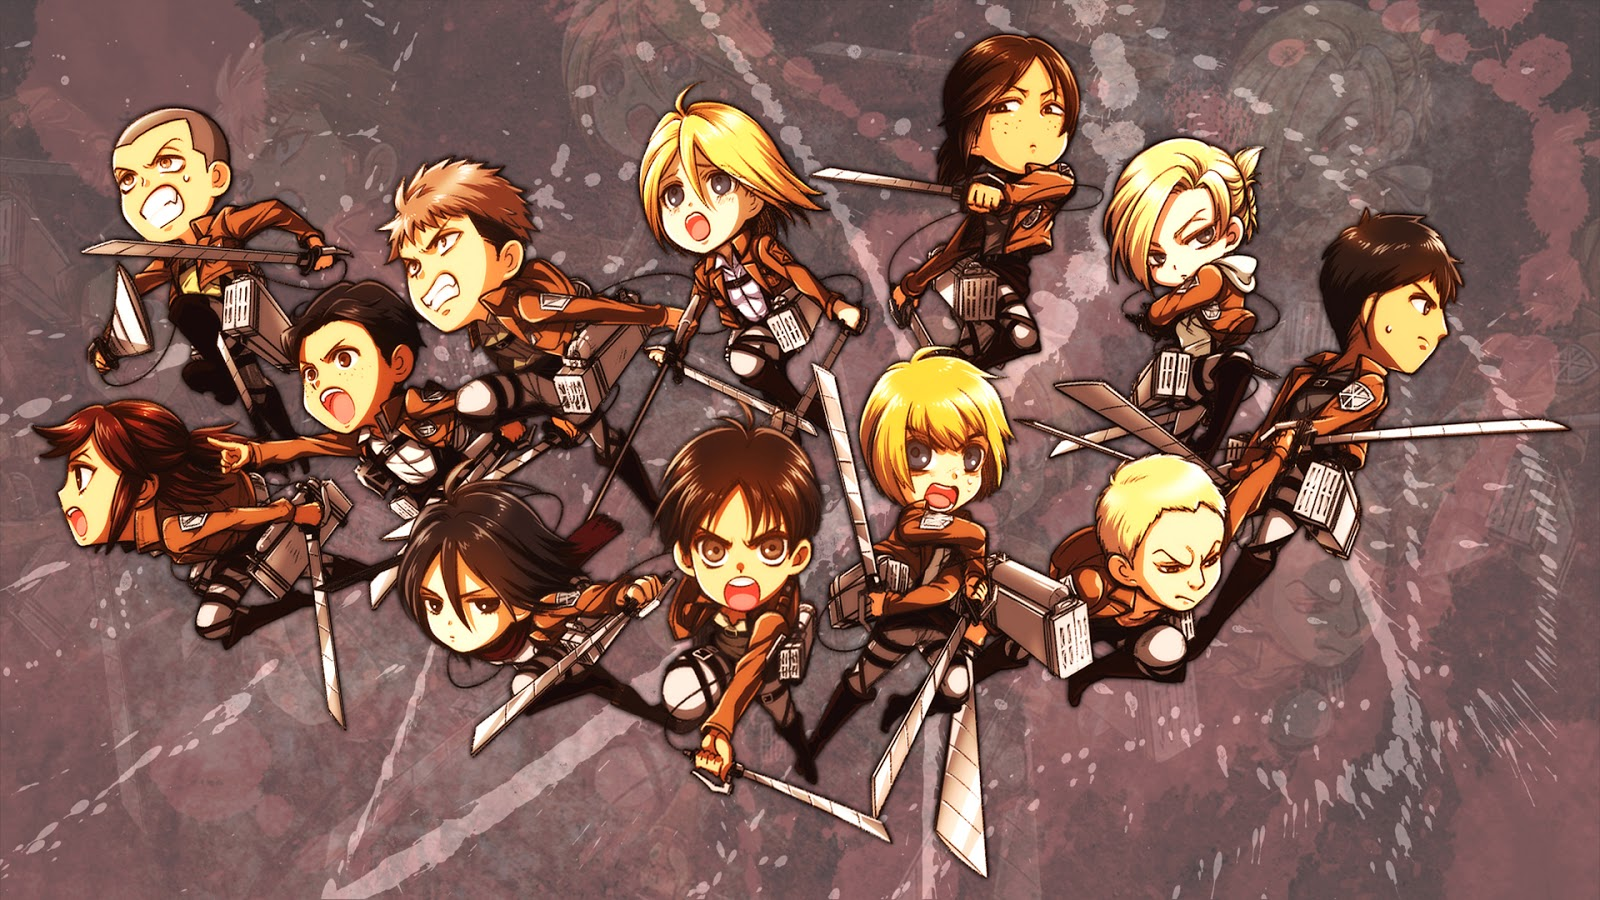 Sasha Braus Attack on Titan Shingeki no Kyojin Anime HD Wallpaper c02 1600x900